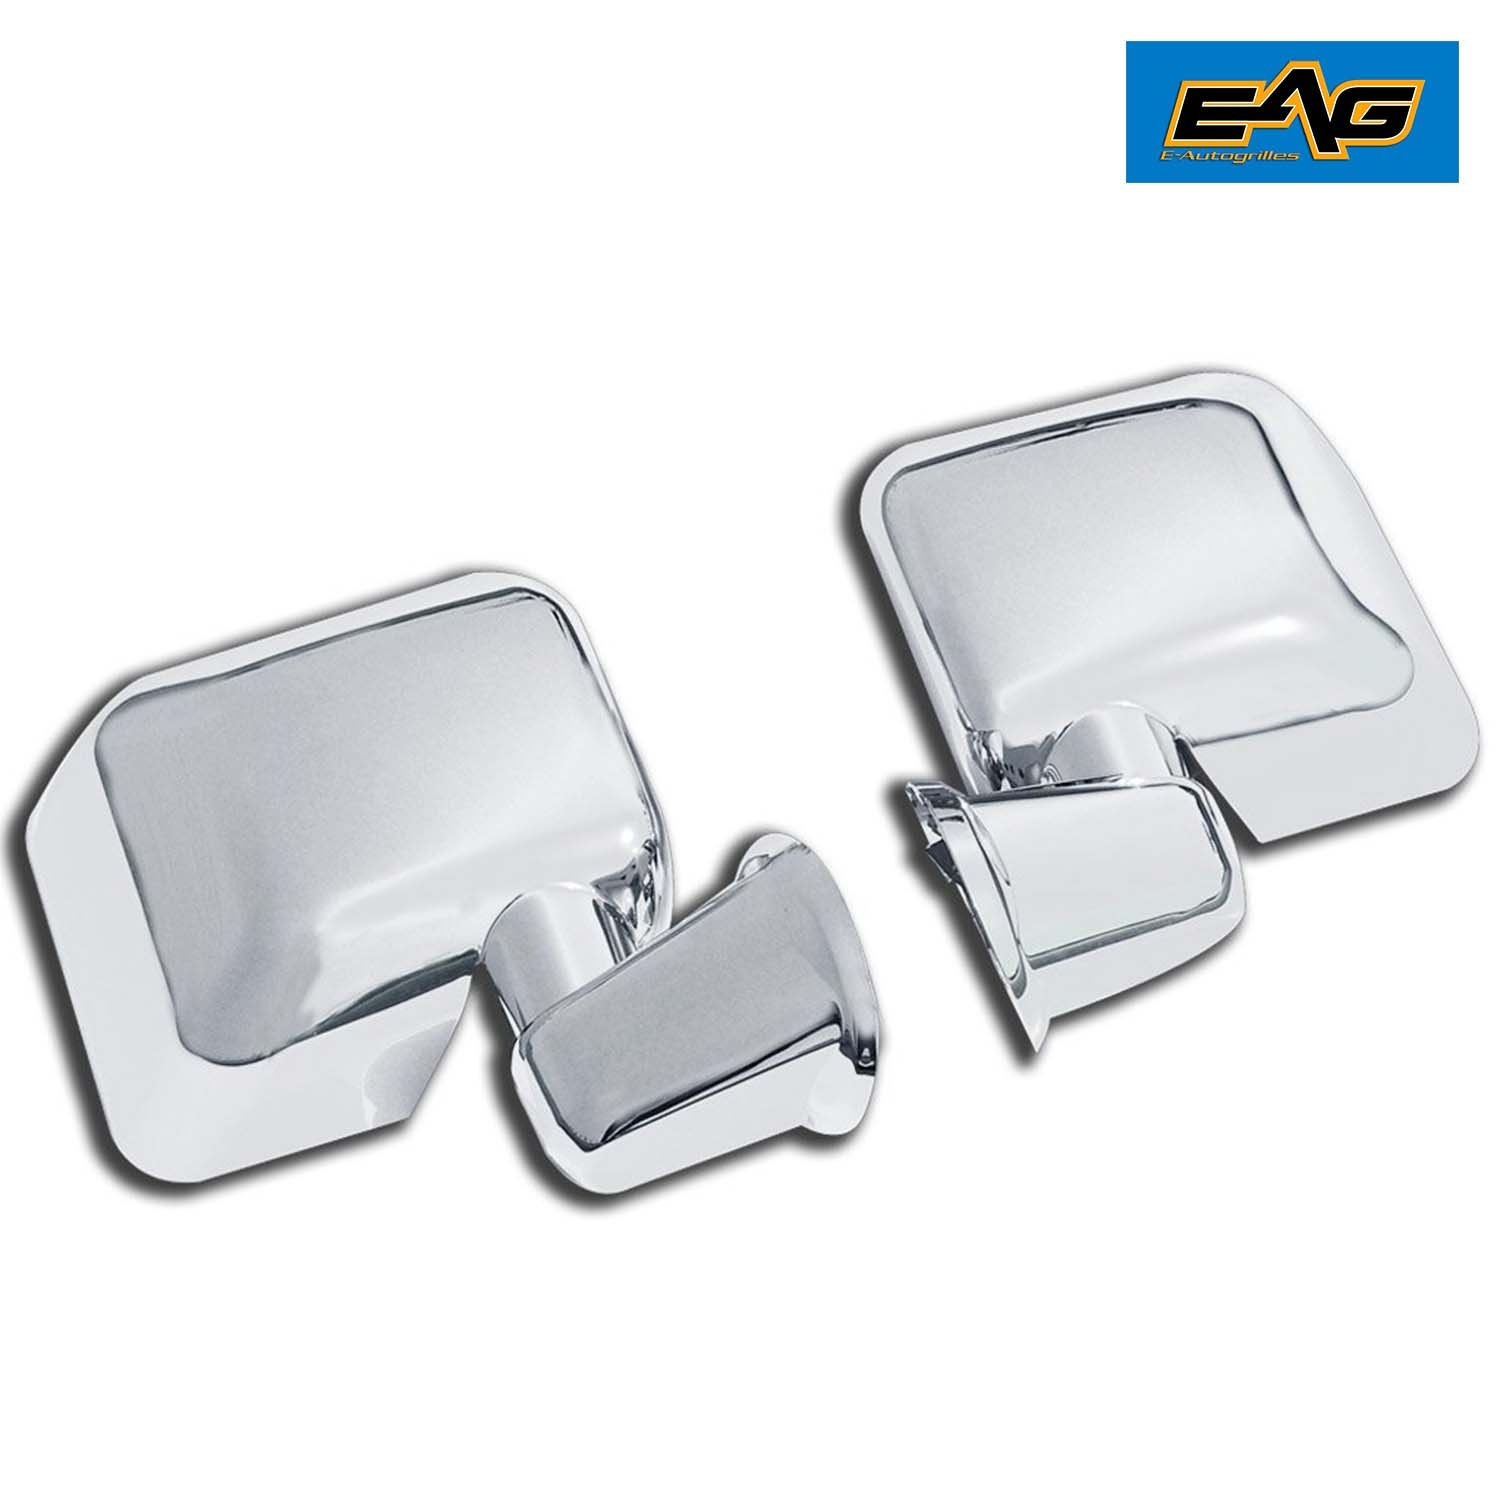 65-0207 for 07-16 Jeep Wrangler JK E-Autogrilles Triple Chrome Plated ABS Full Mirror Cover Arm Cover included